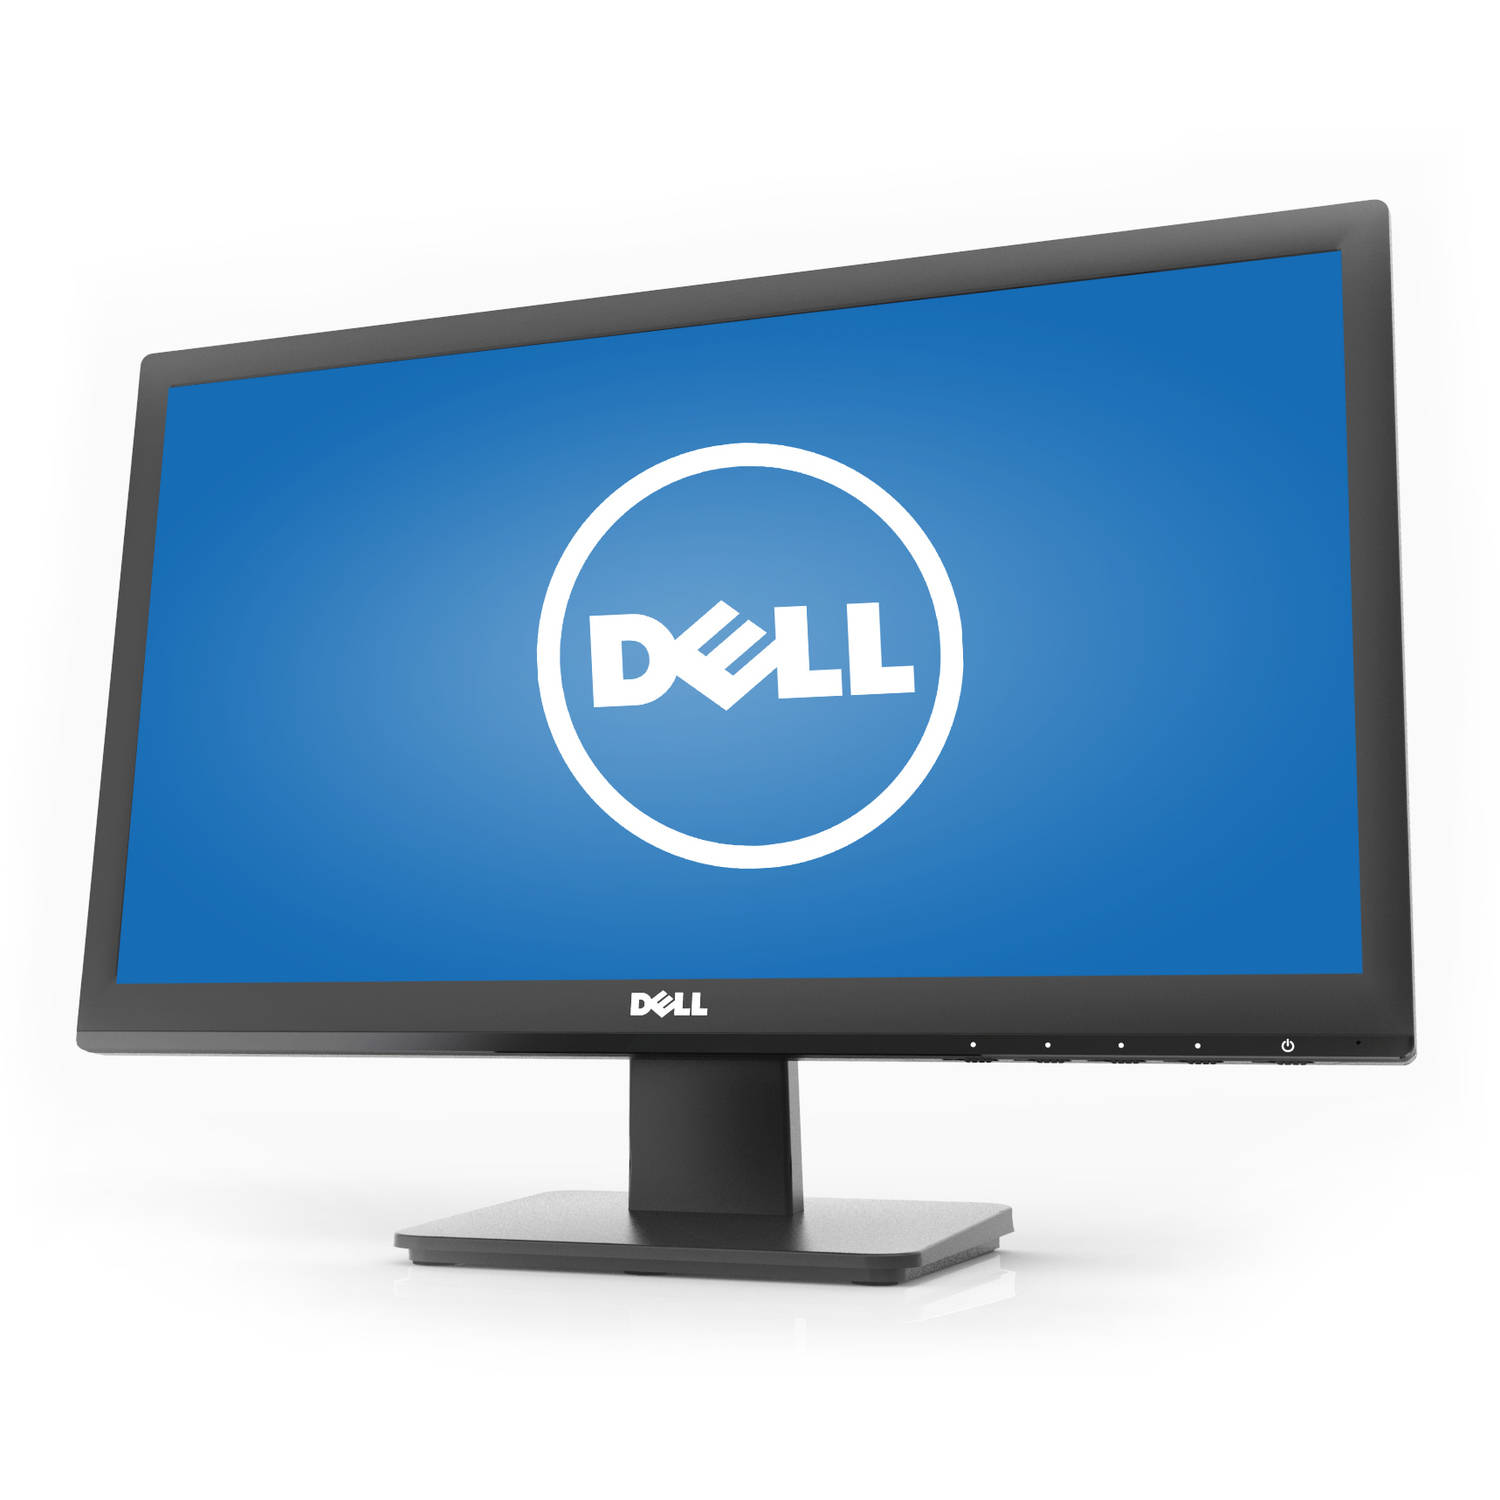 "Dell 19.5"" LED Widescreen Monitor (D2015HM Black)"